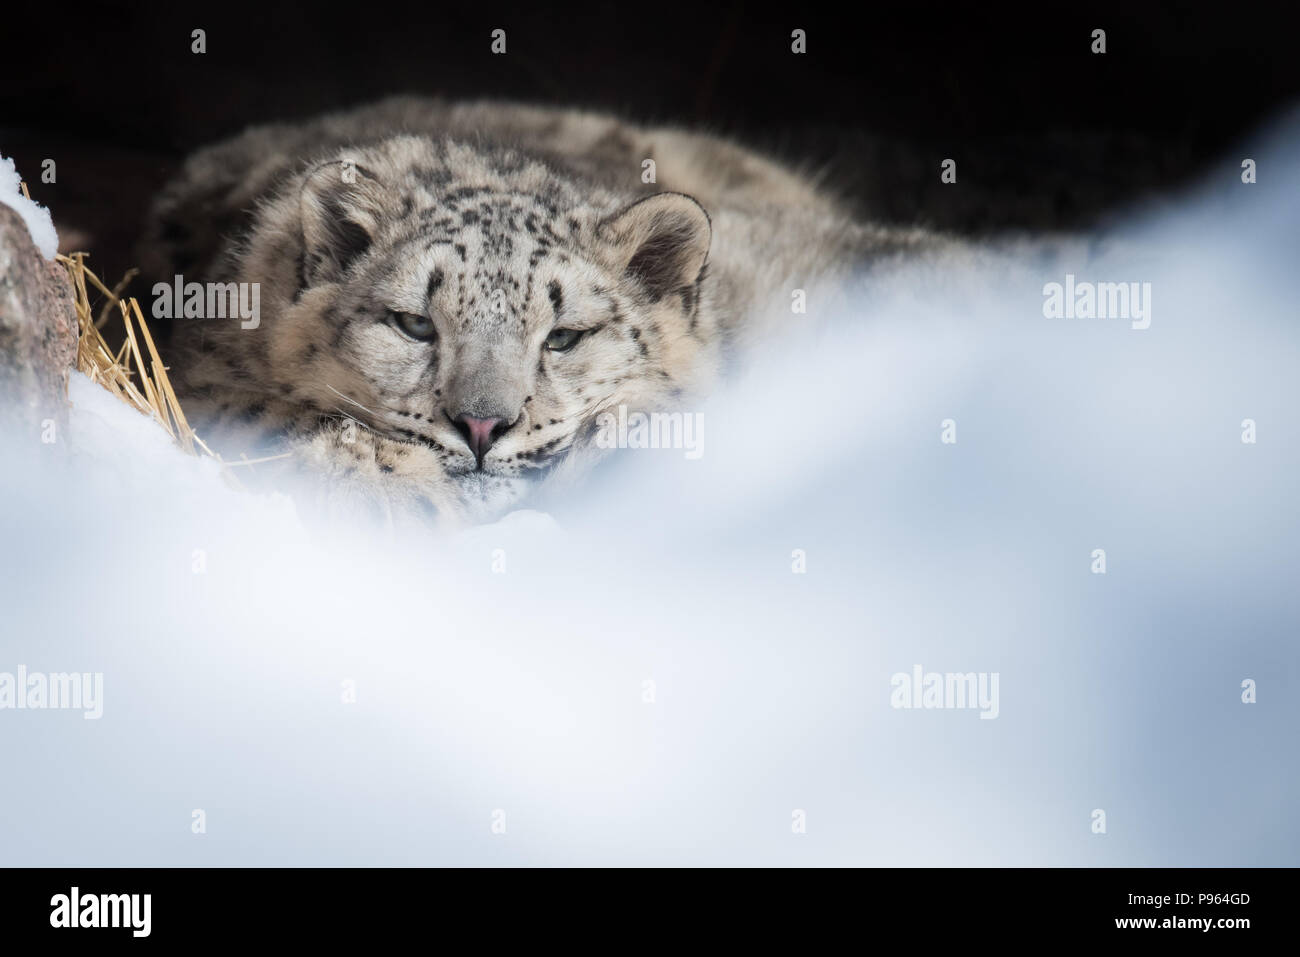 A snow leopard cub rests in its den at The Toronto Zoo.  Vulnerable to extinction in the wild, this animal is part of a captive breeding program. - Stock Image